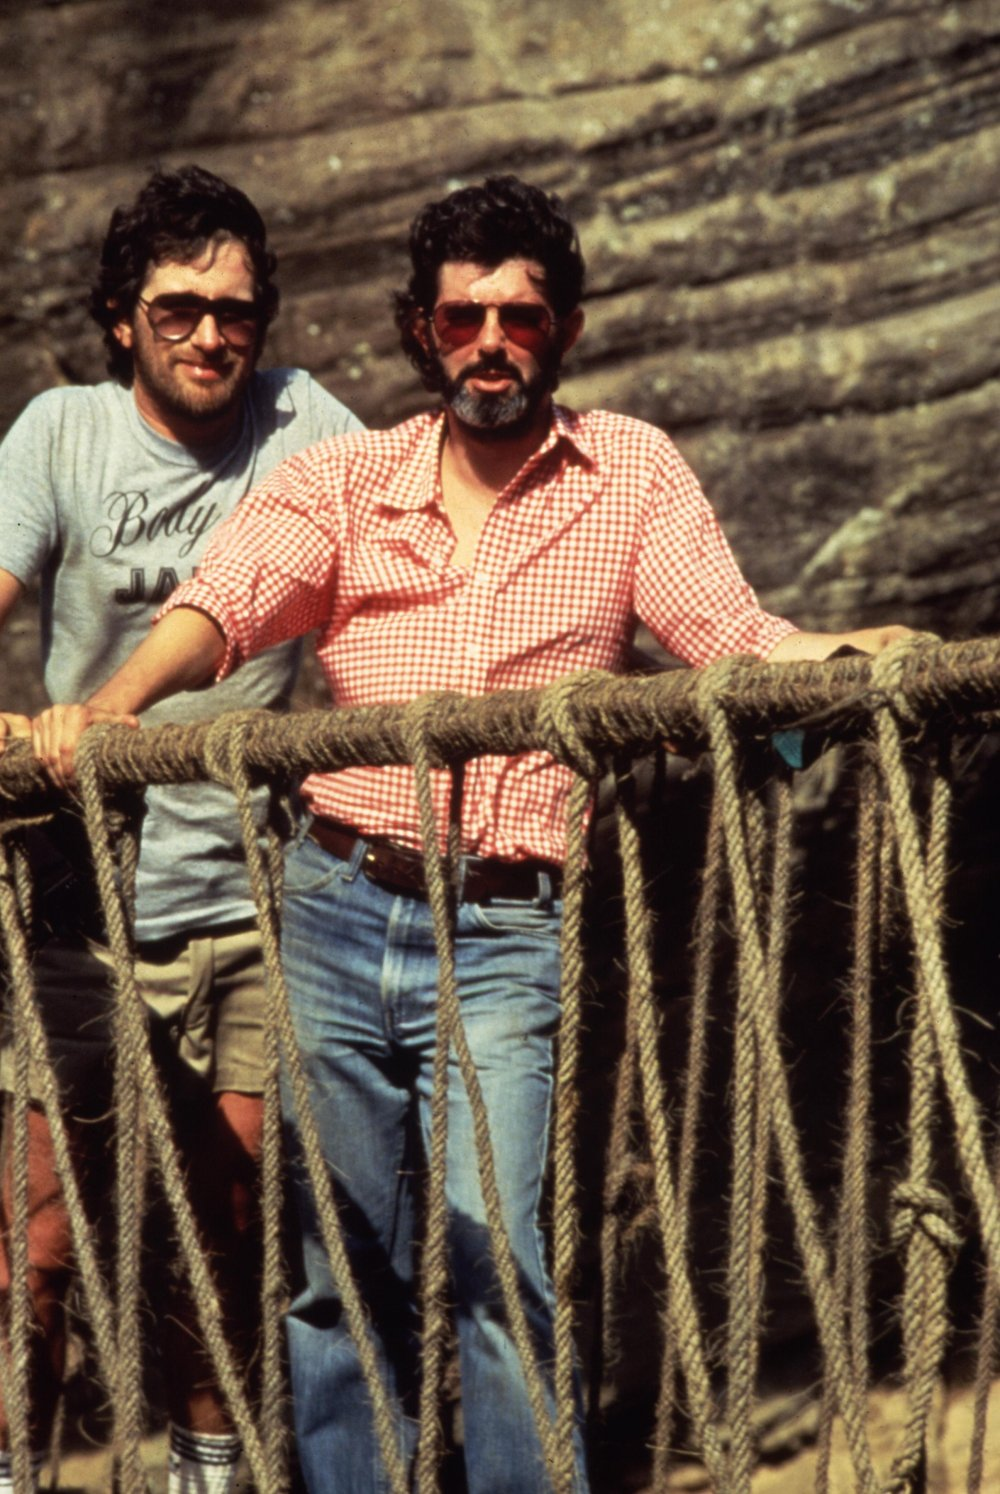 Spielberg and writer-producer George Lucas tread the treacherous rope bridge used in the finale of Indiana Jones and the Temple. The rope bridge set was constructed at Elstree Studios in Hertfordshire